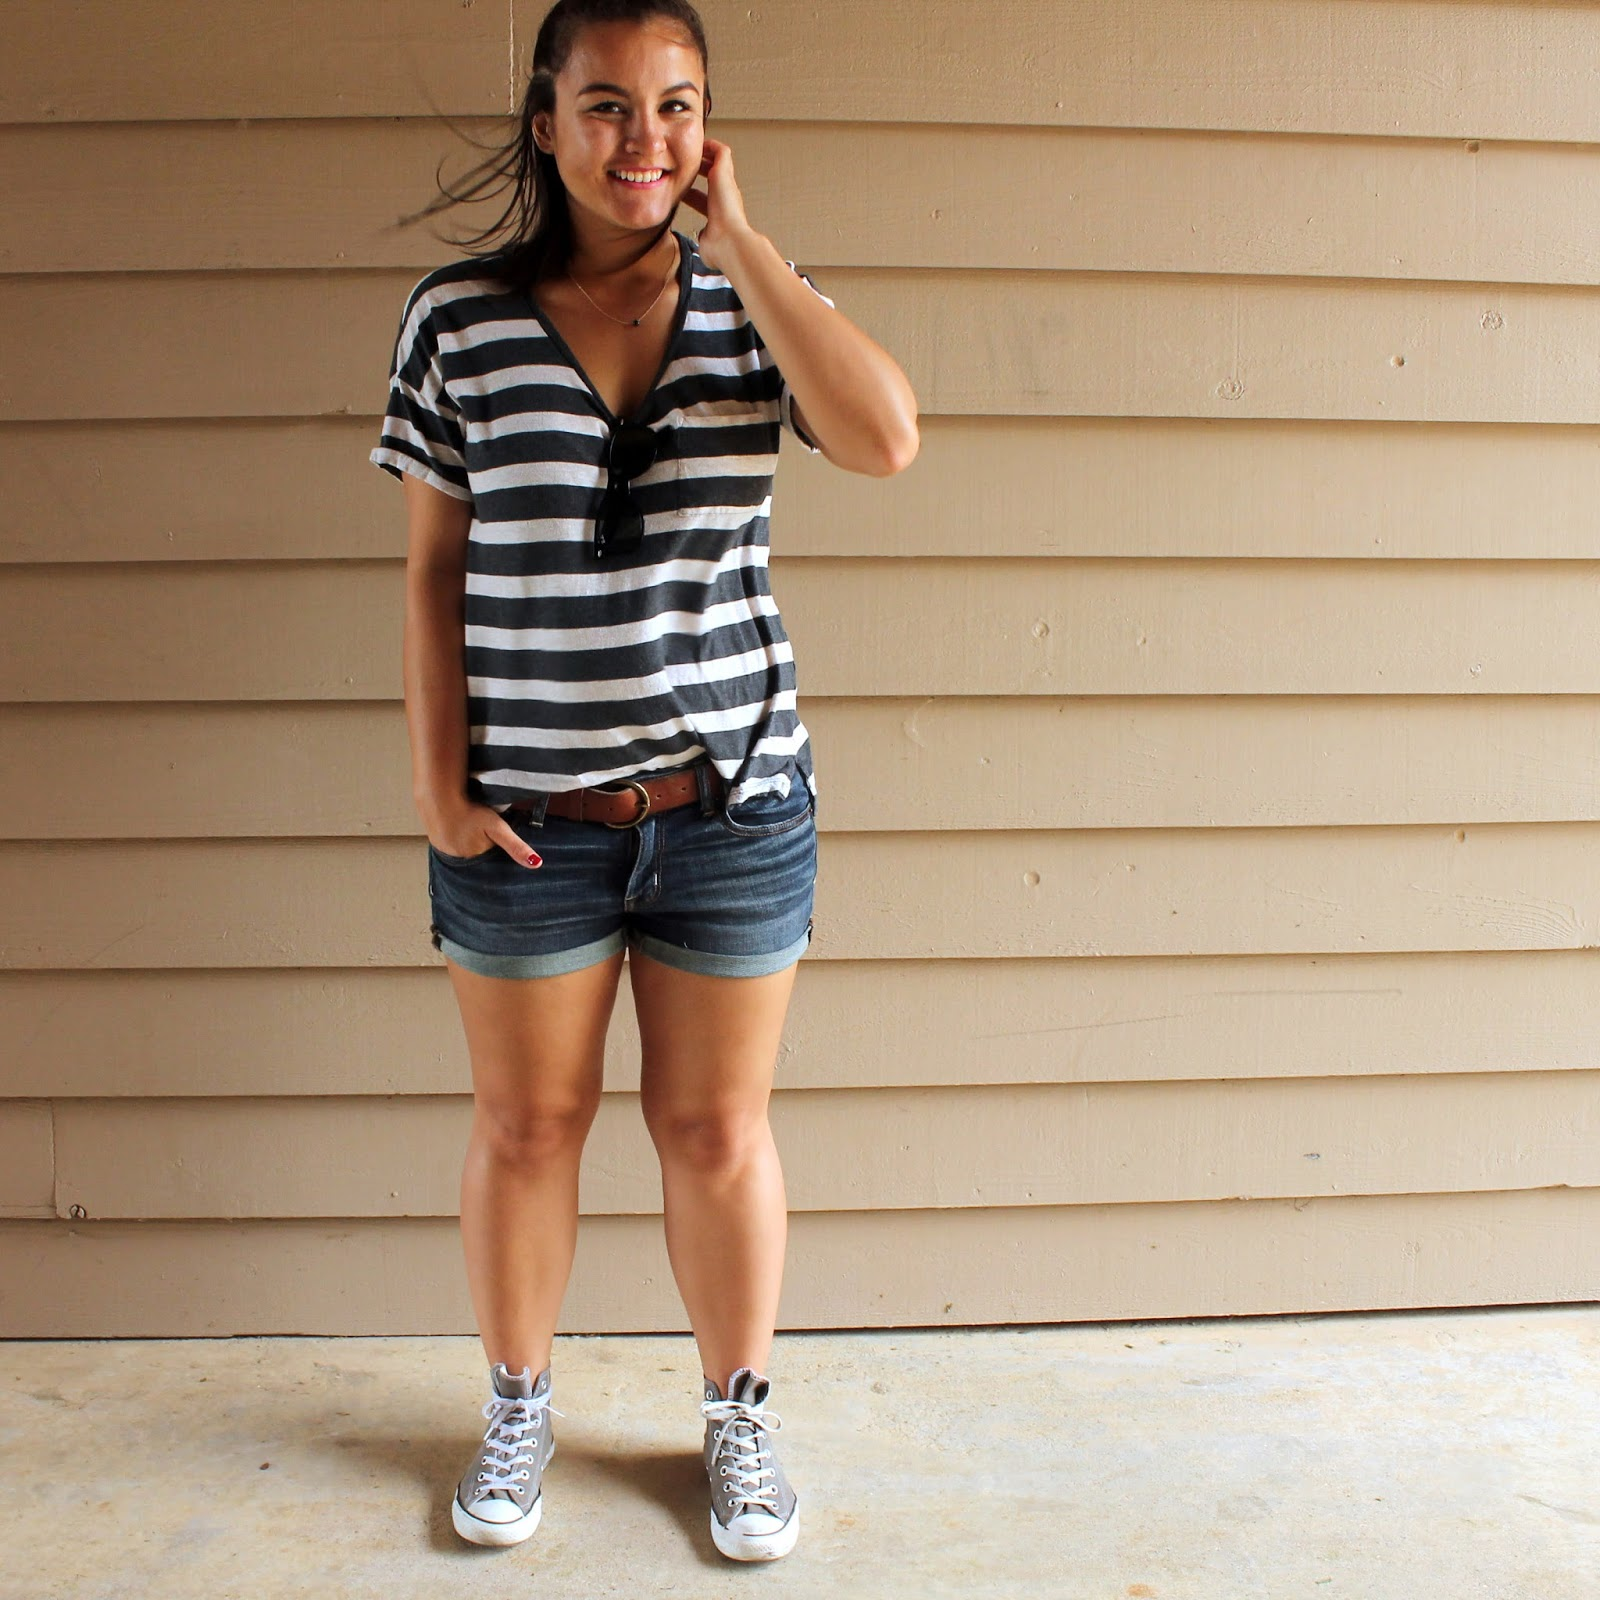 t-shirt, T-shirt, shorts, denim shorts, jorts, sunglasses, ray bands, half bun, stripes, striped, striped t-shirt, converse, high tops, dogeared, loft, loveloft,